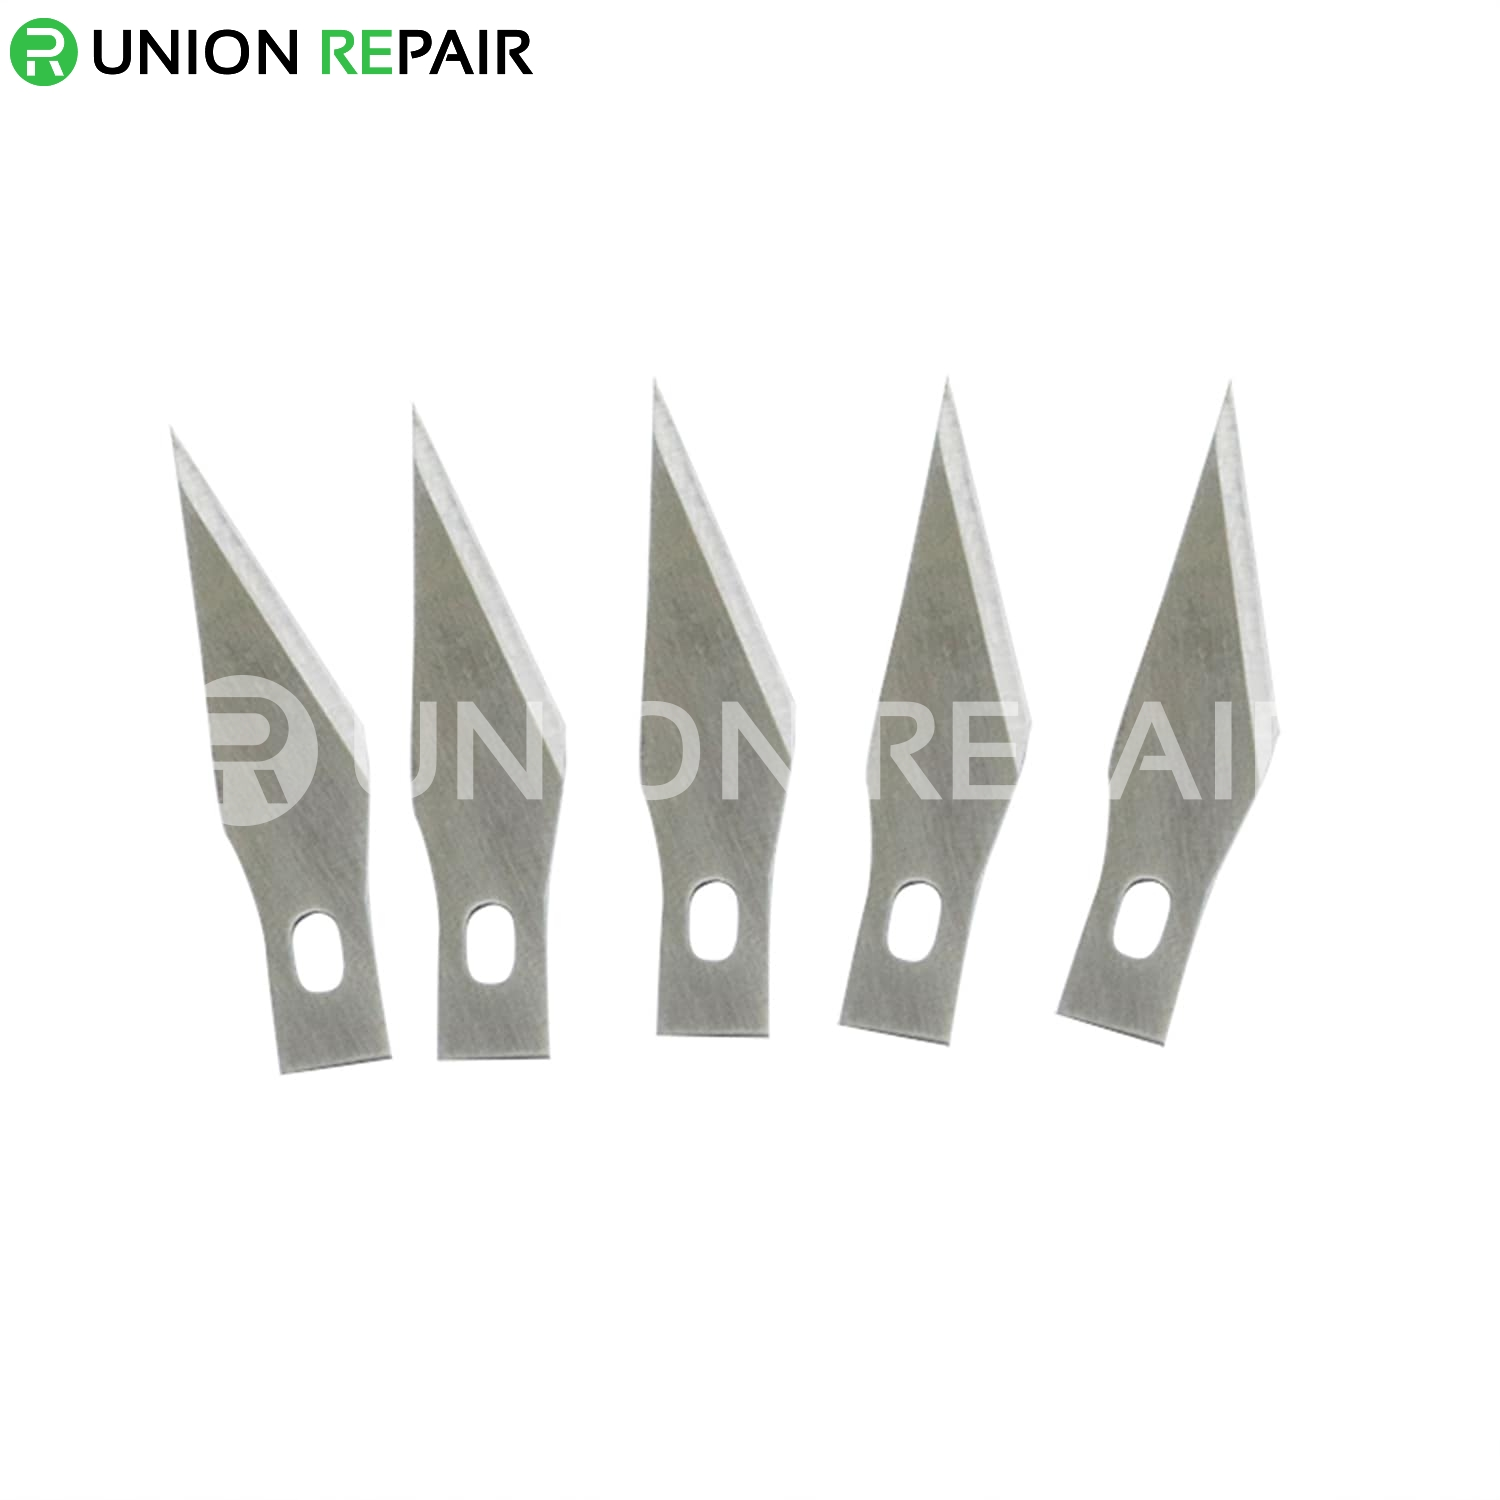 Non-Slip Metal Carving Knife Tool Set (handle with 5pcs #11 blades)